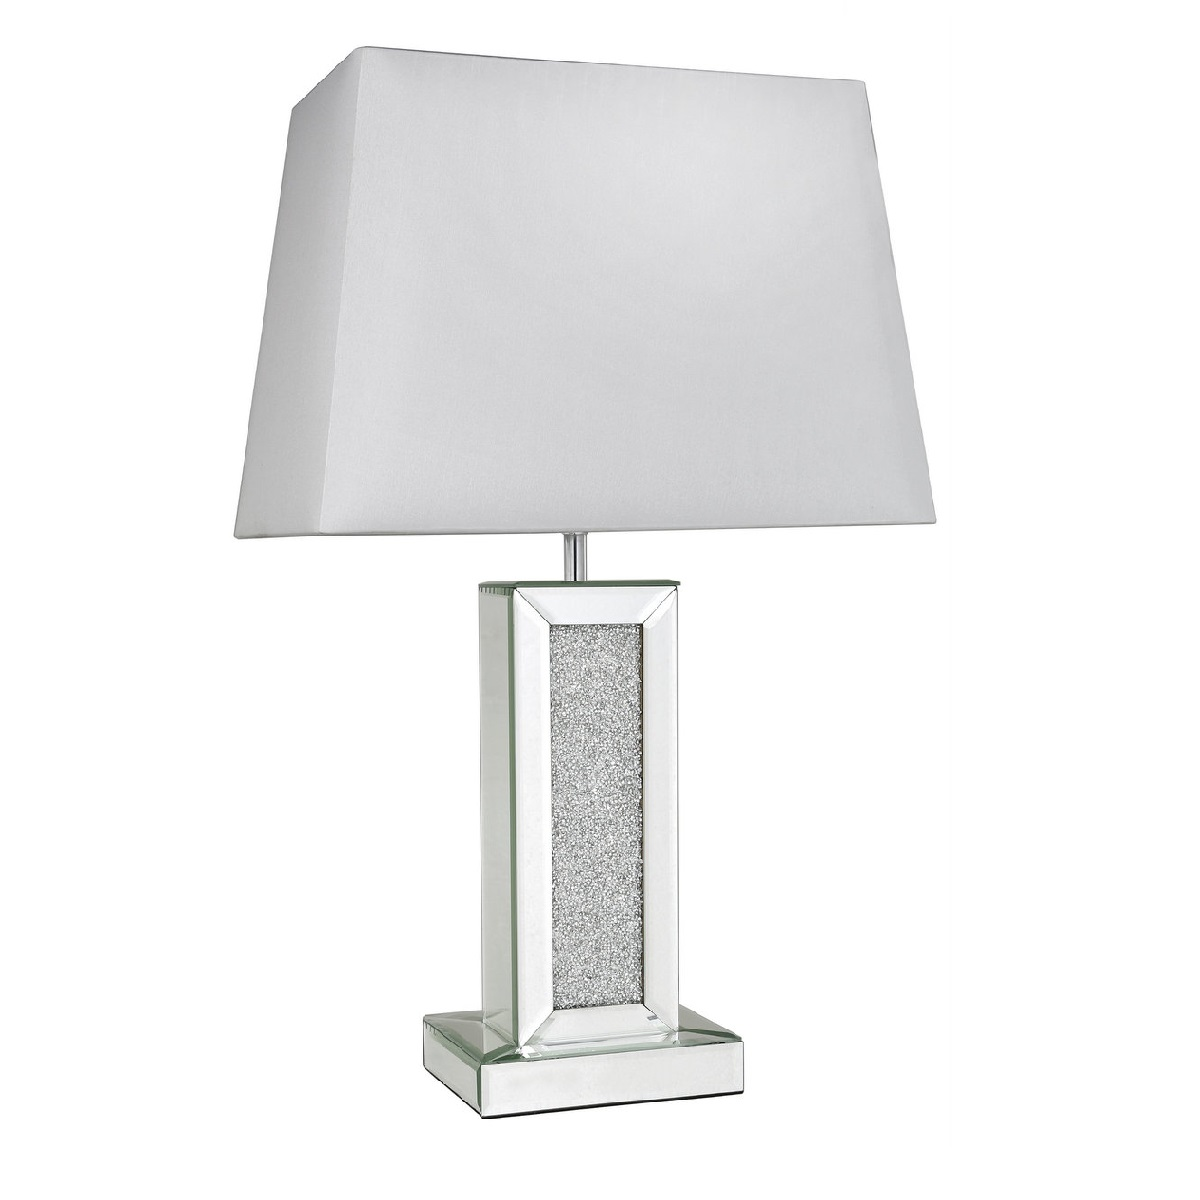 Tuscany Table Lamp With Swarovski Crystals